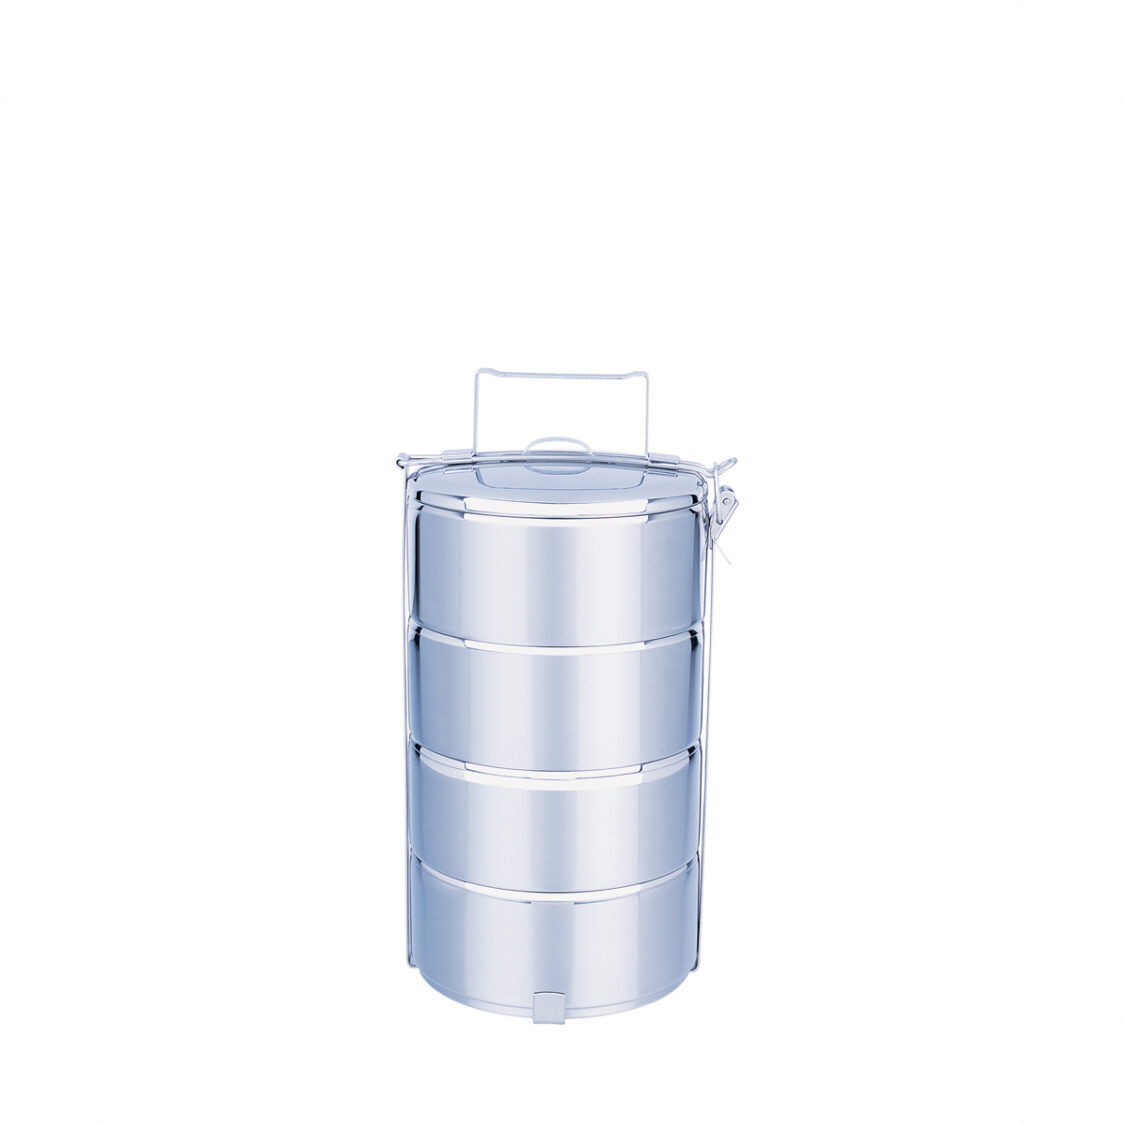 Stainless Steel Food Carrier 14X4 Sun